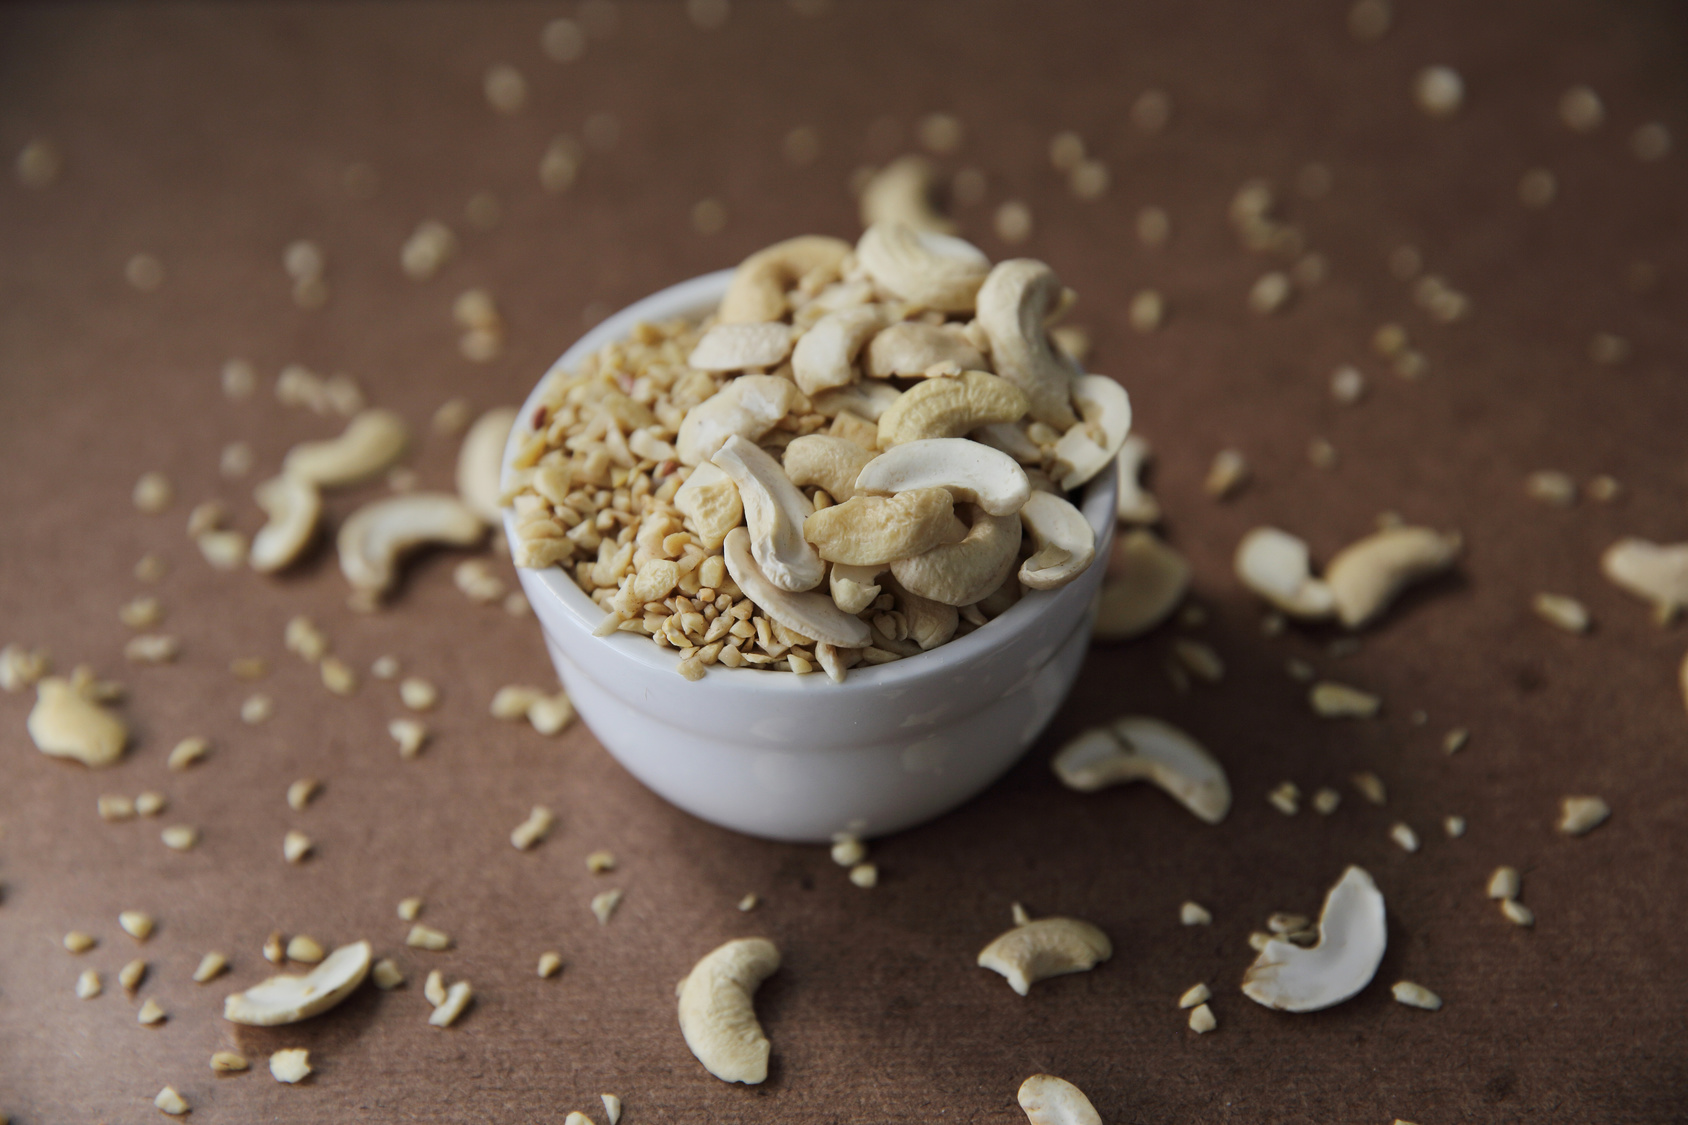 crushed peanuts on wood background in mystic light